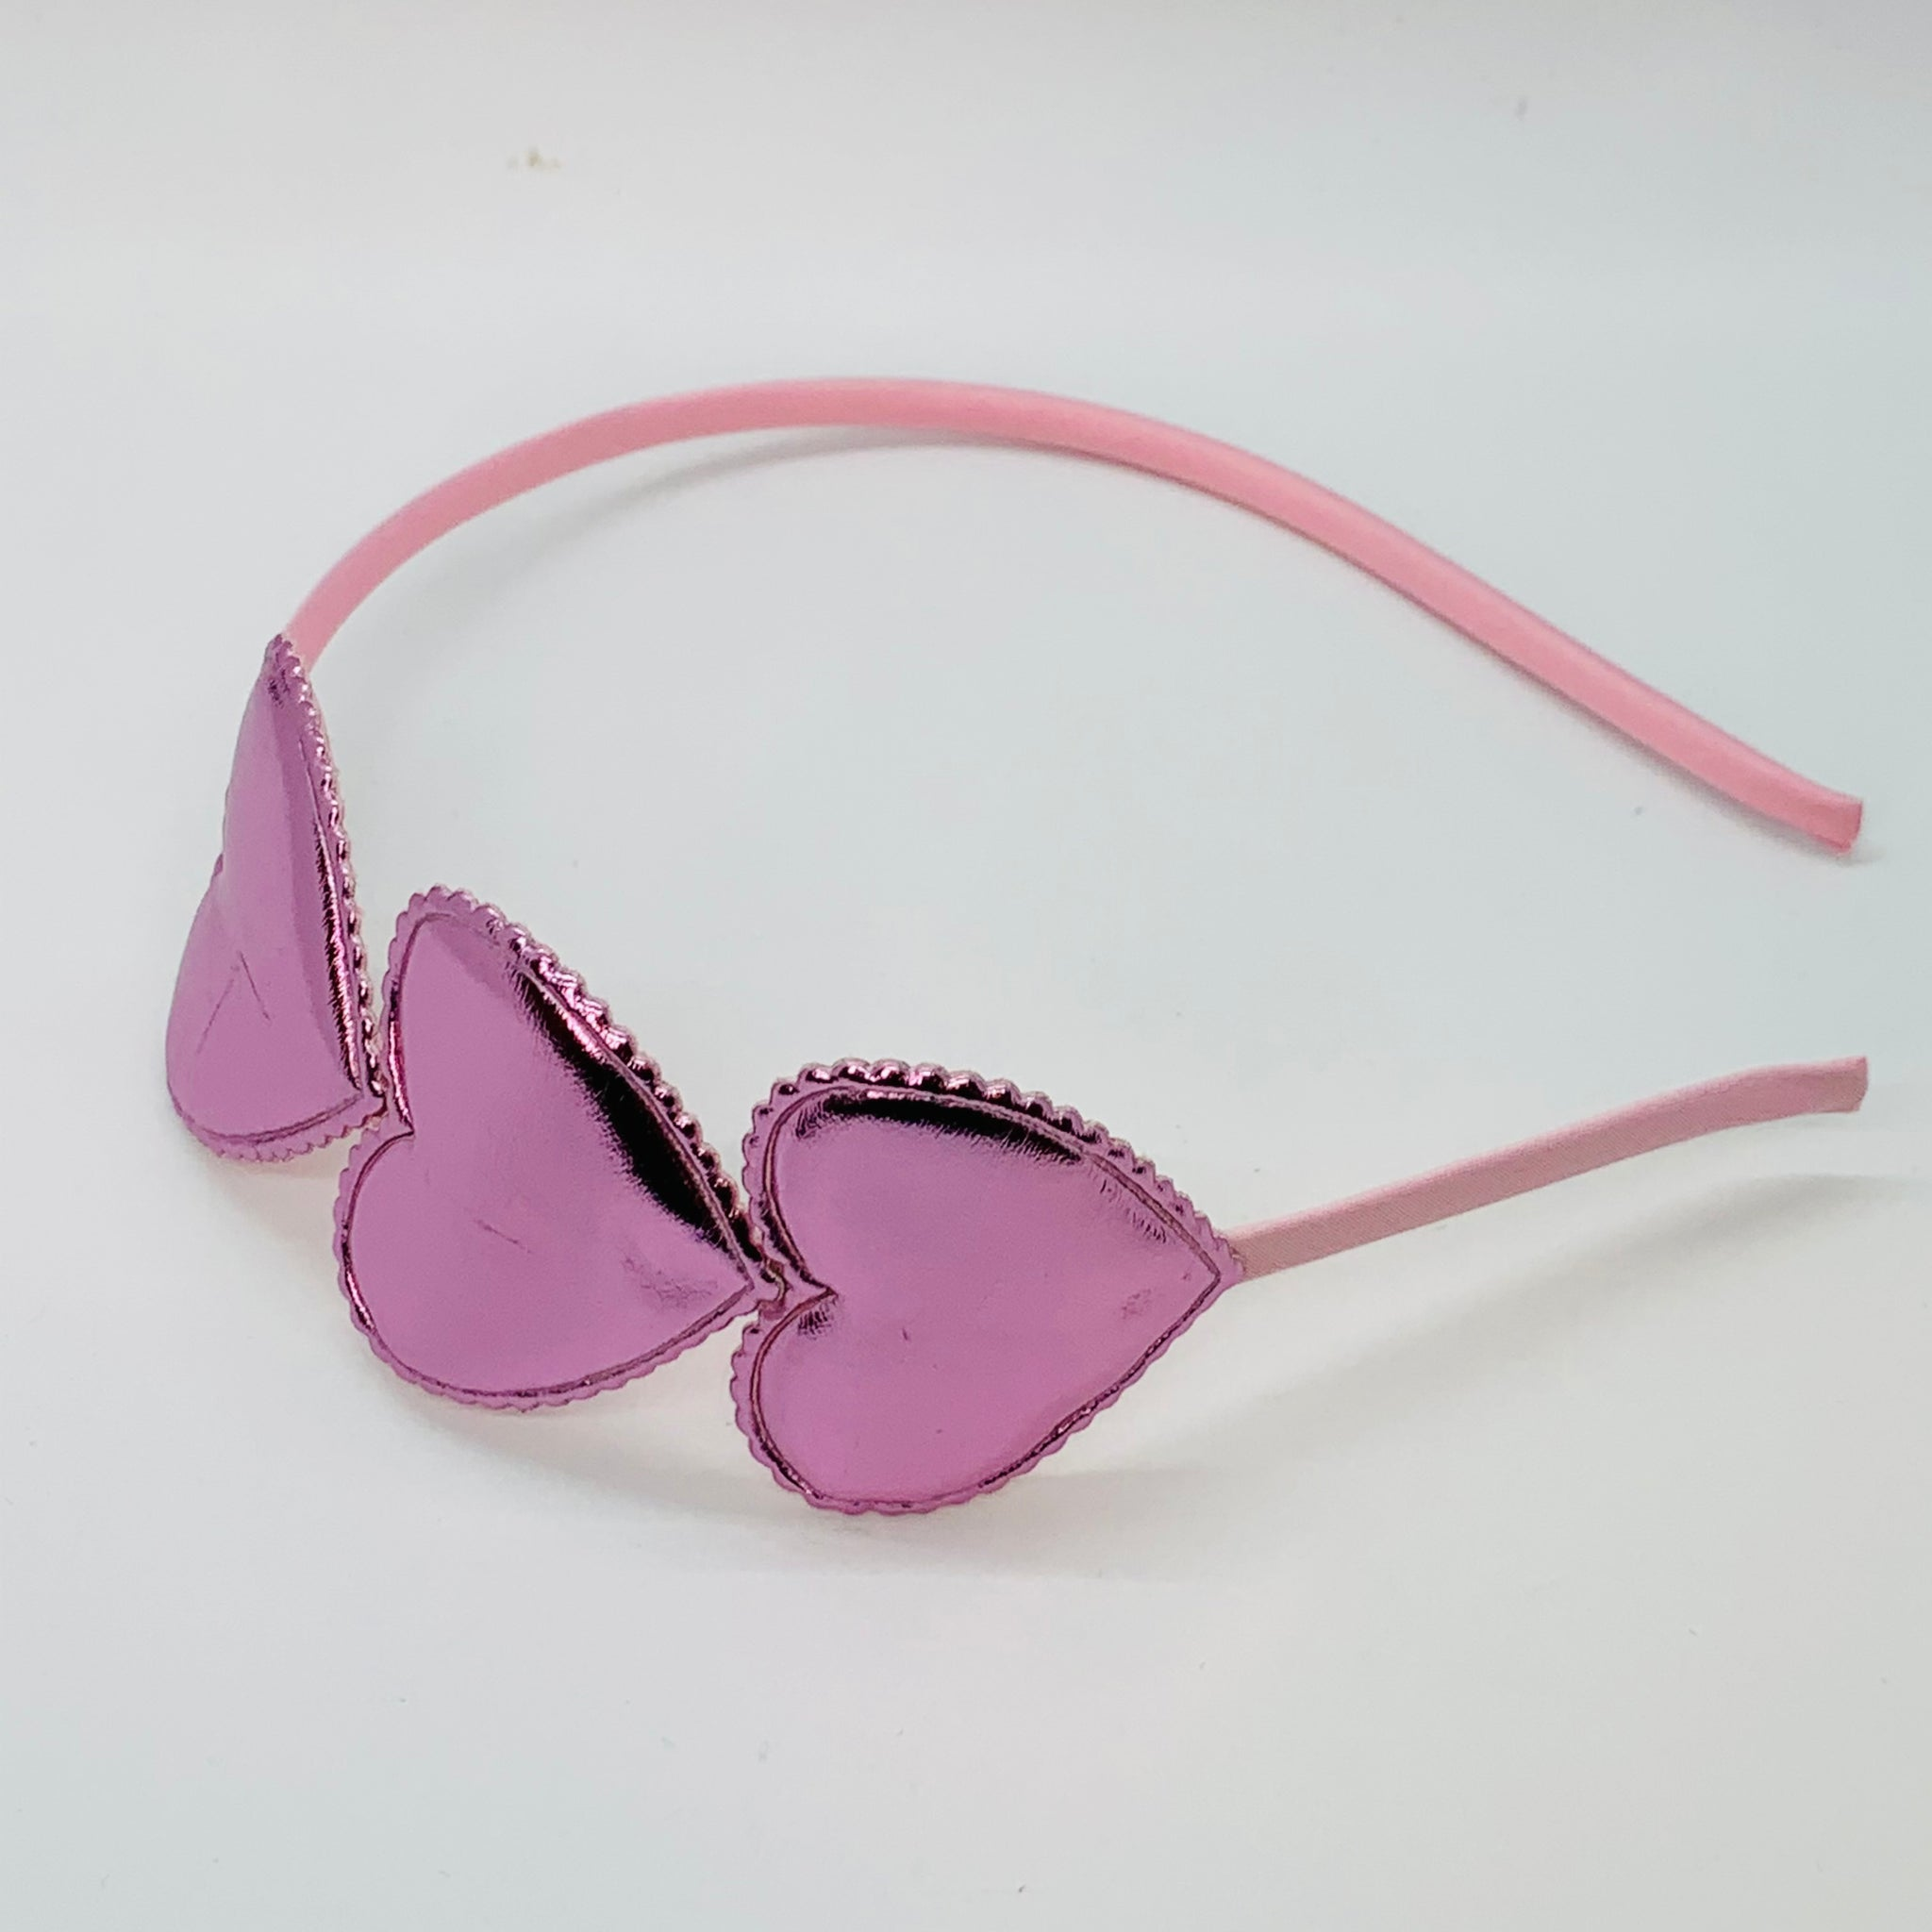 Hot Pink Metallic Heart Headband